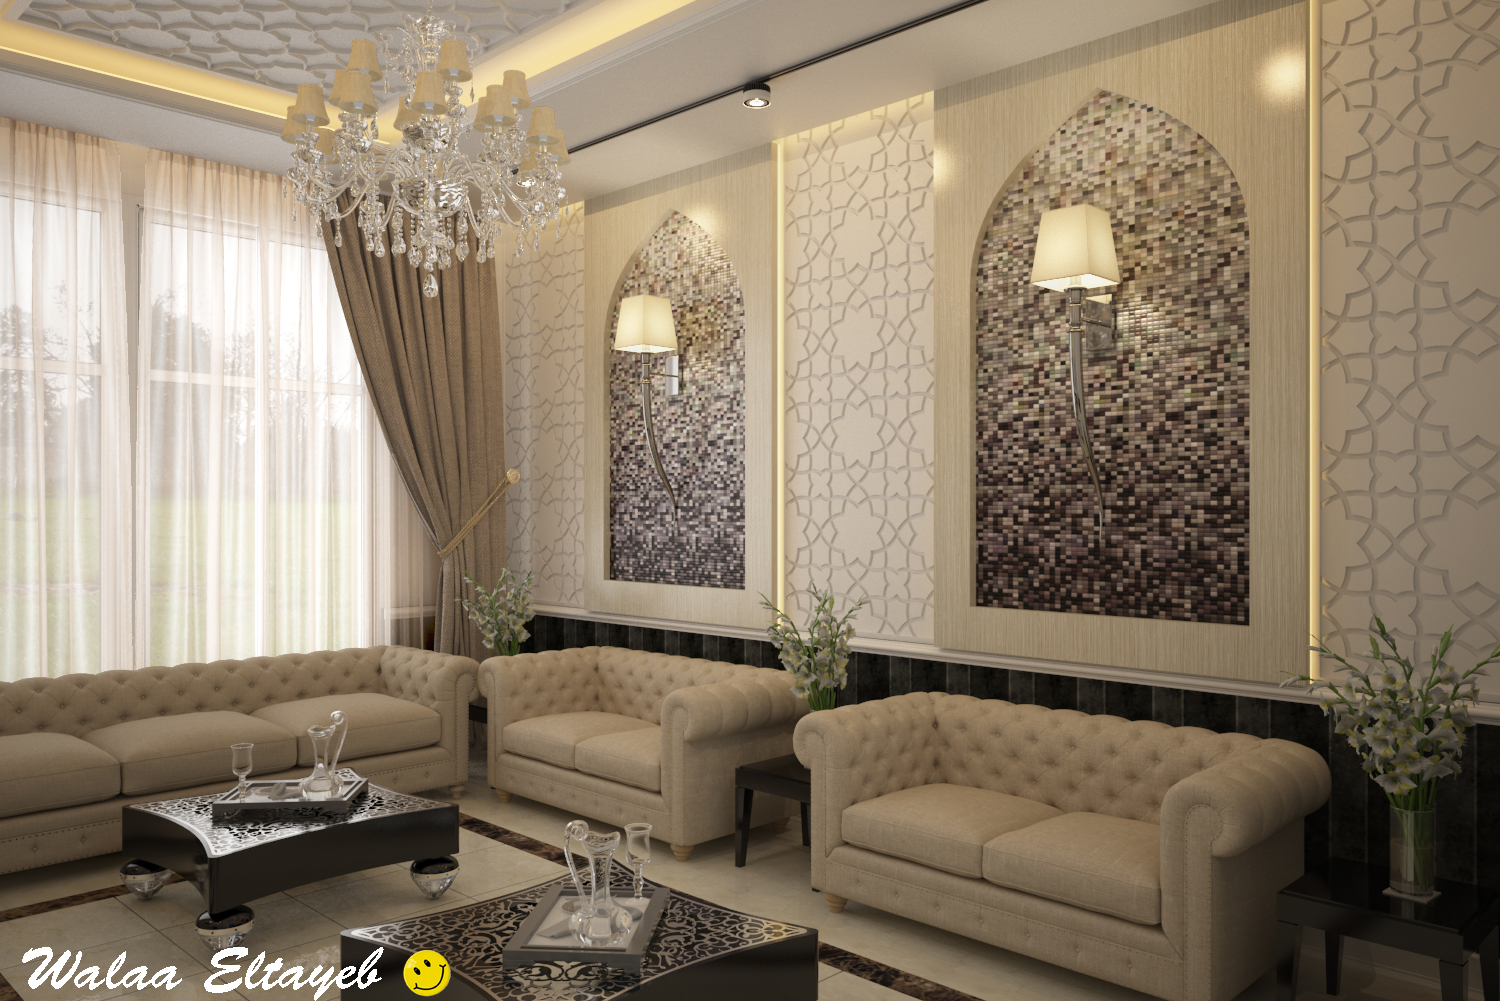 Salon interance hall walaadesigns for Designs of the interior